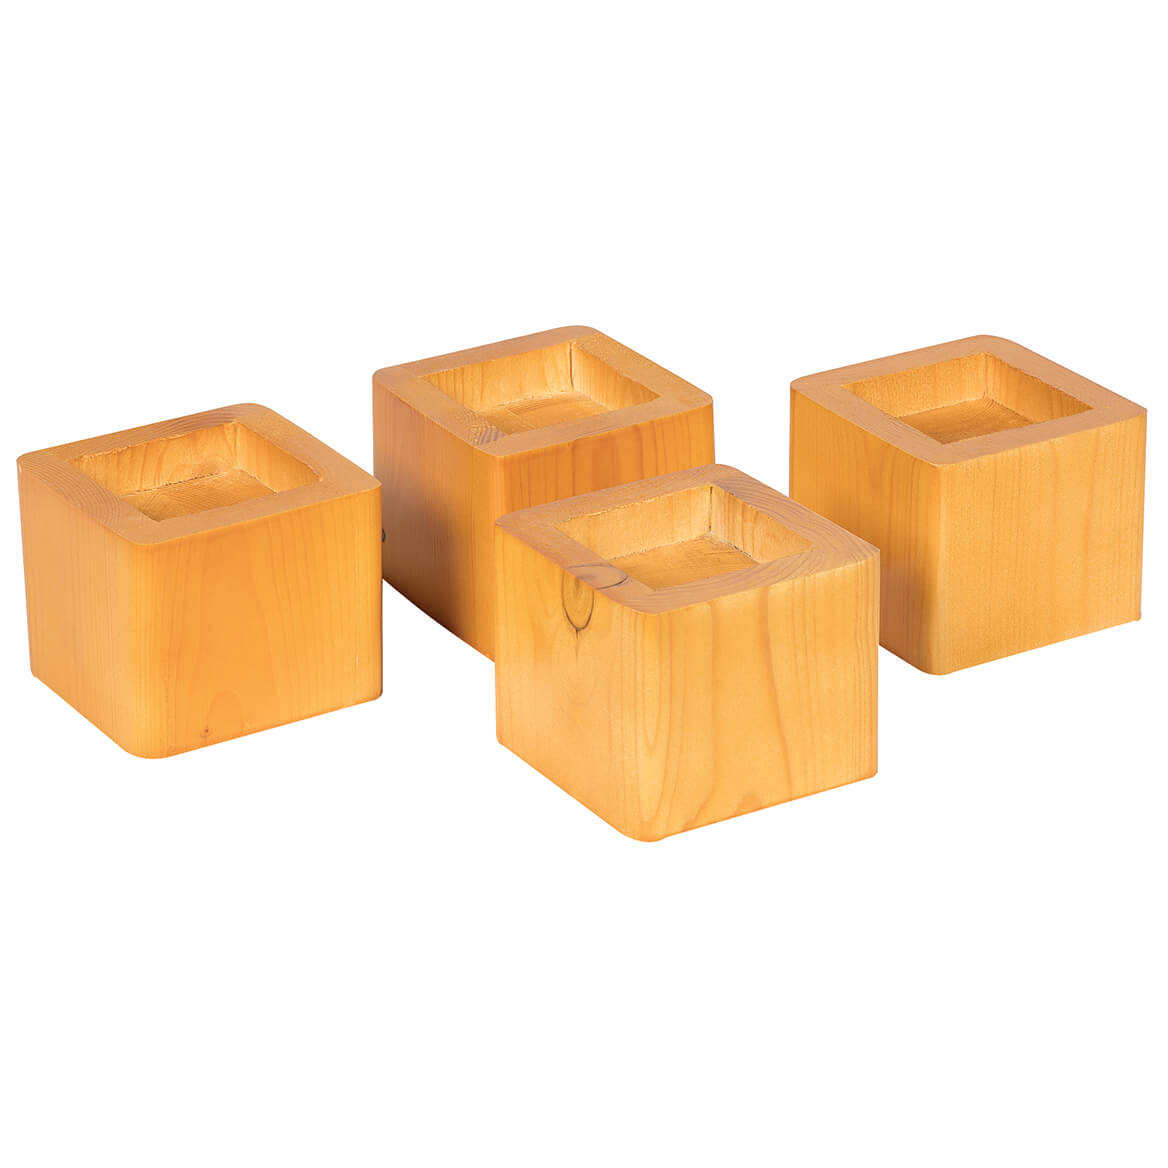 Wood Bed Risers Set of 4